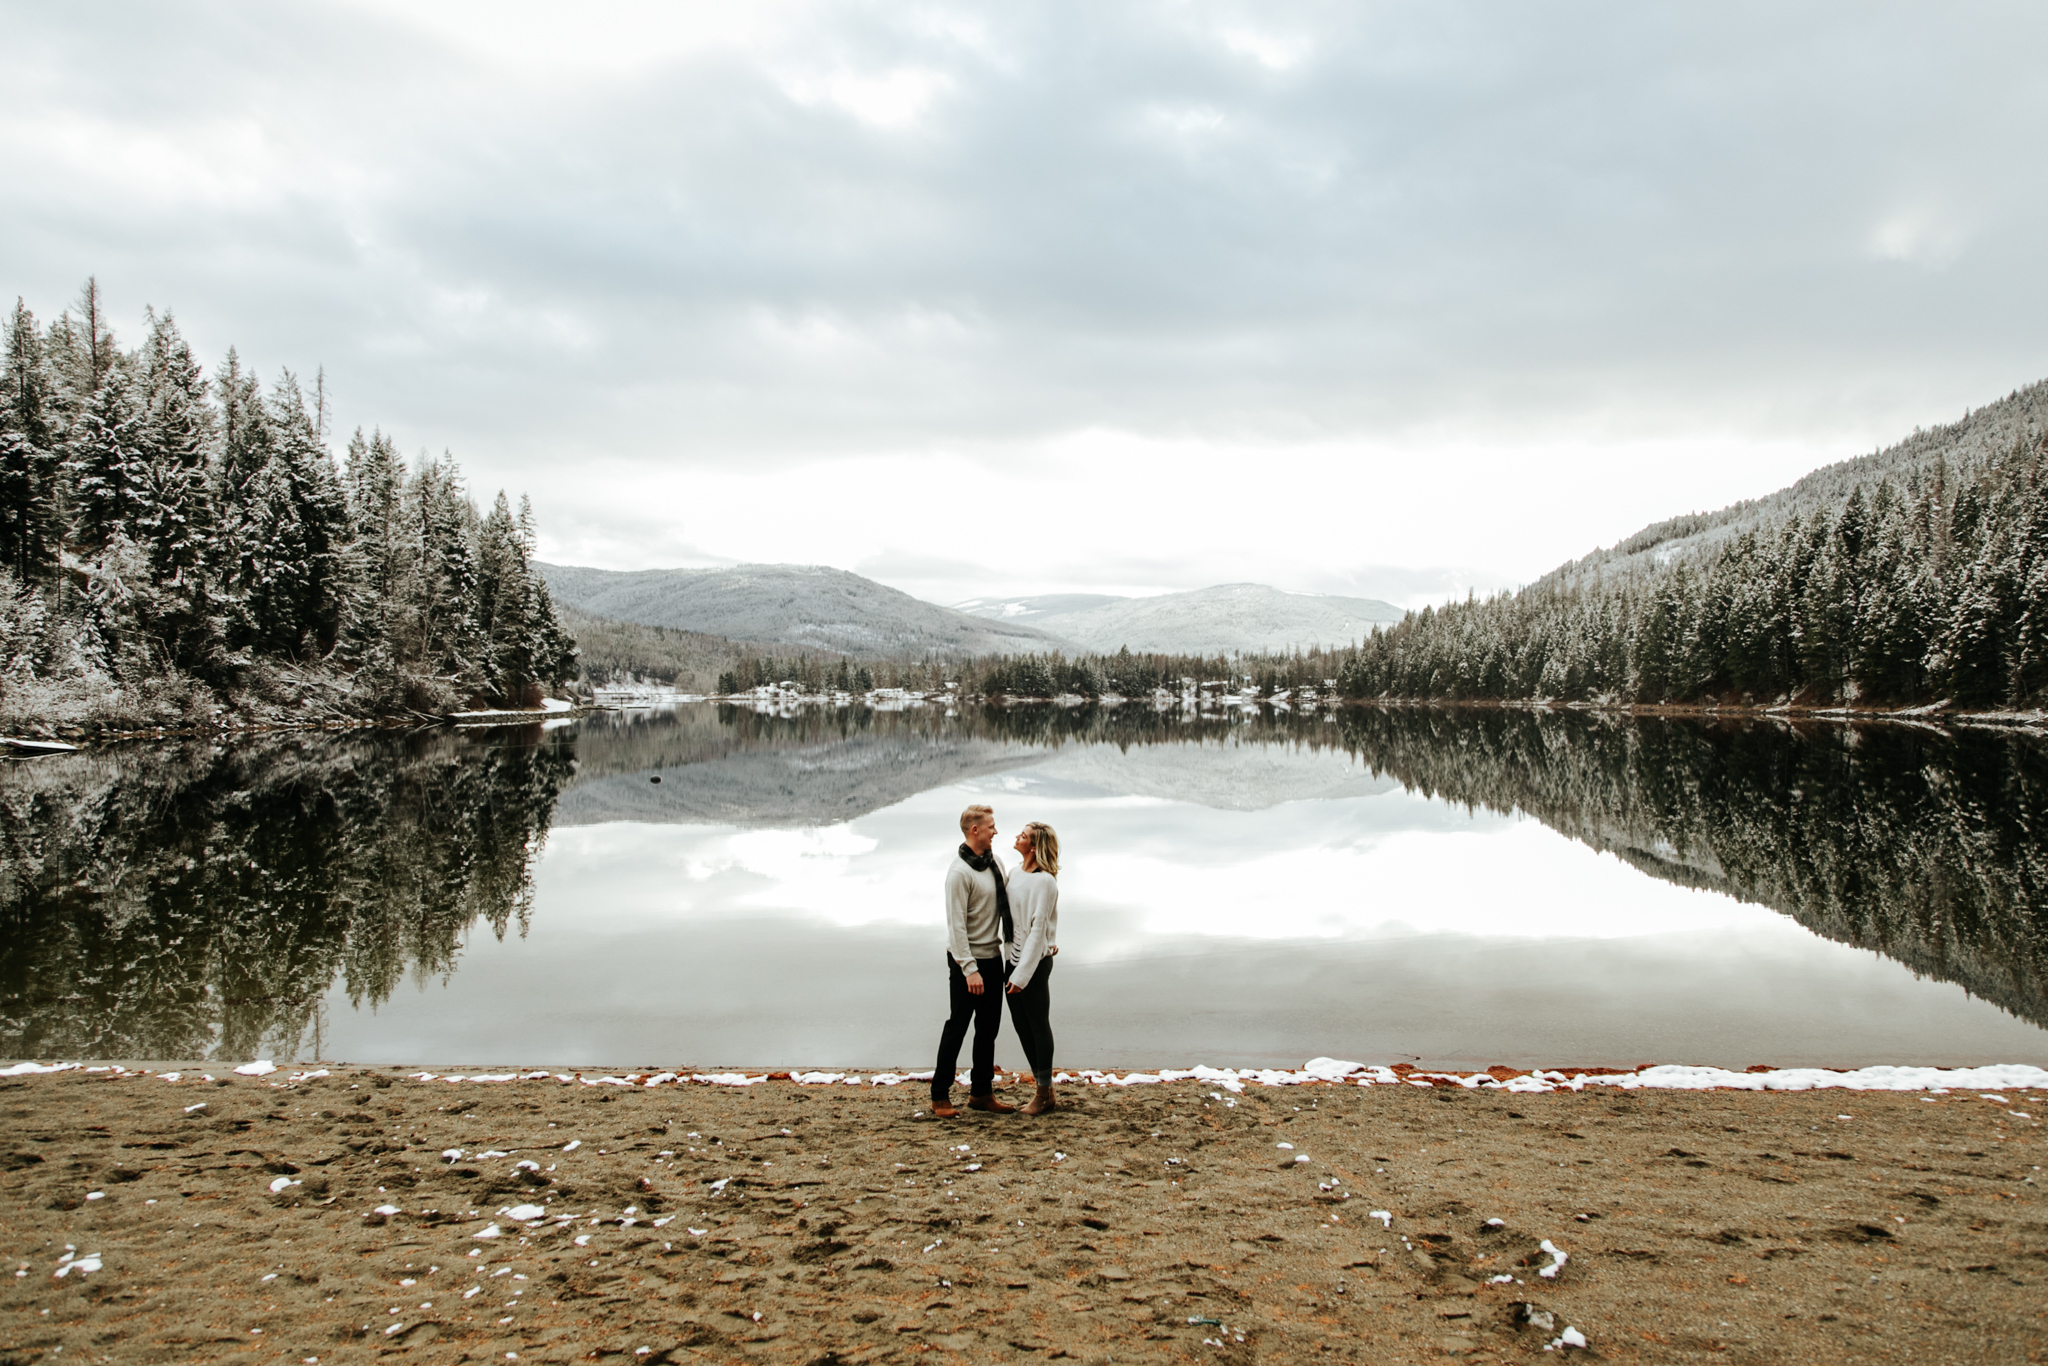 love-and-be-loved-photography-mountain-engagement-ashlyn-rob-perfect-fit-4-u-photo-image-picture-19.jpg